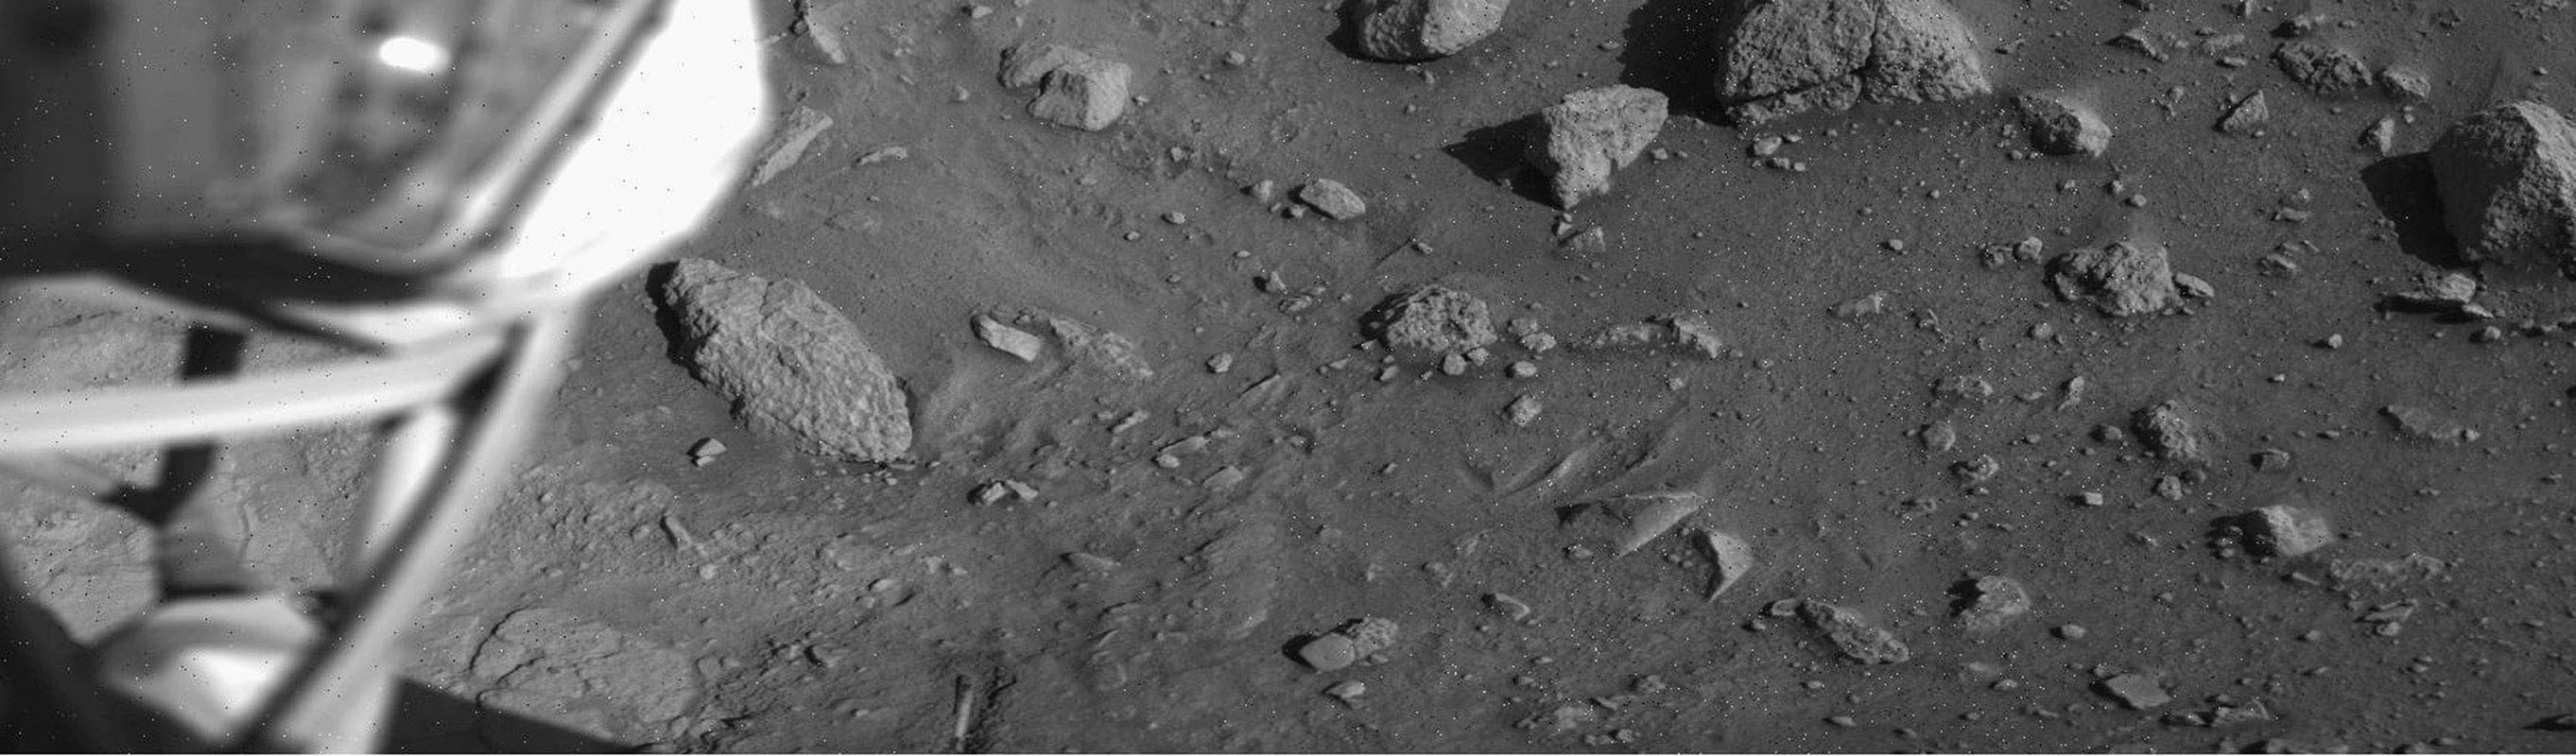 This image was taken by NASA's Viking Lander 1 on August 1, 1976, 12 sols after landing. The soil beneath Viking 1 has been exposed due to exhaust from thruster engines during descent.